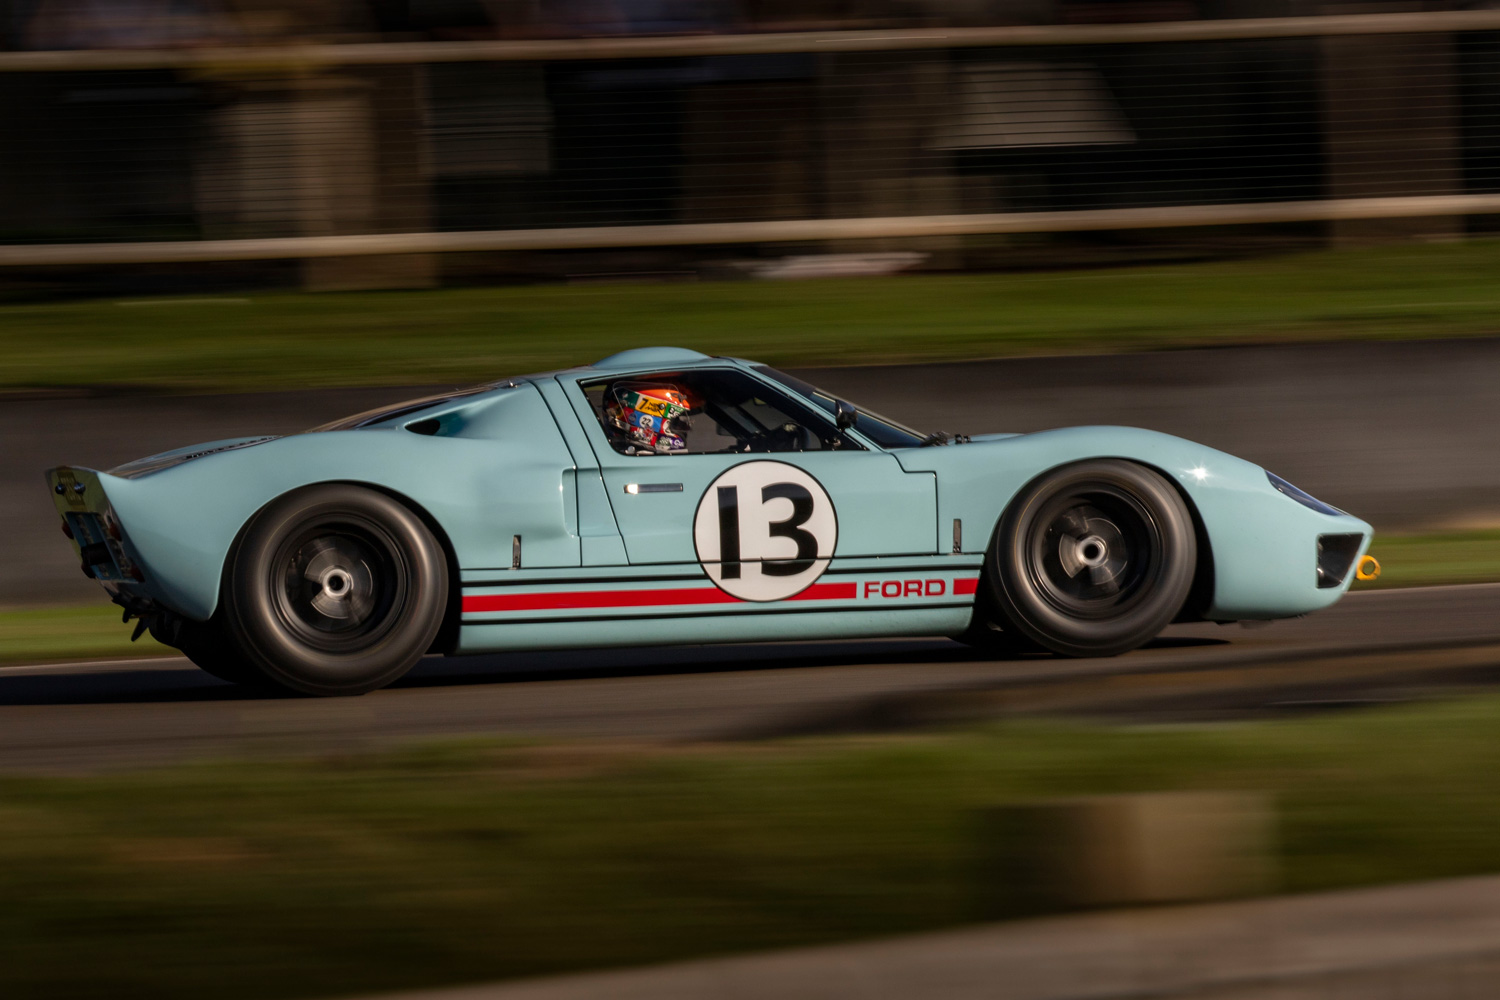 1965 Ford GT40 #13